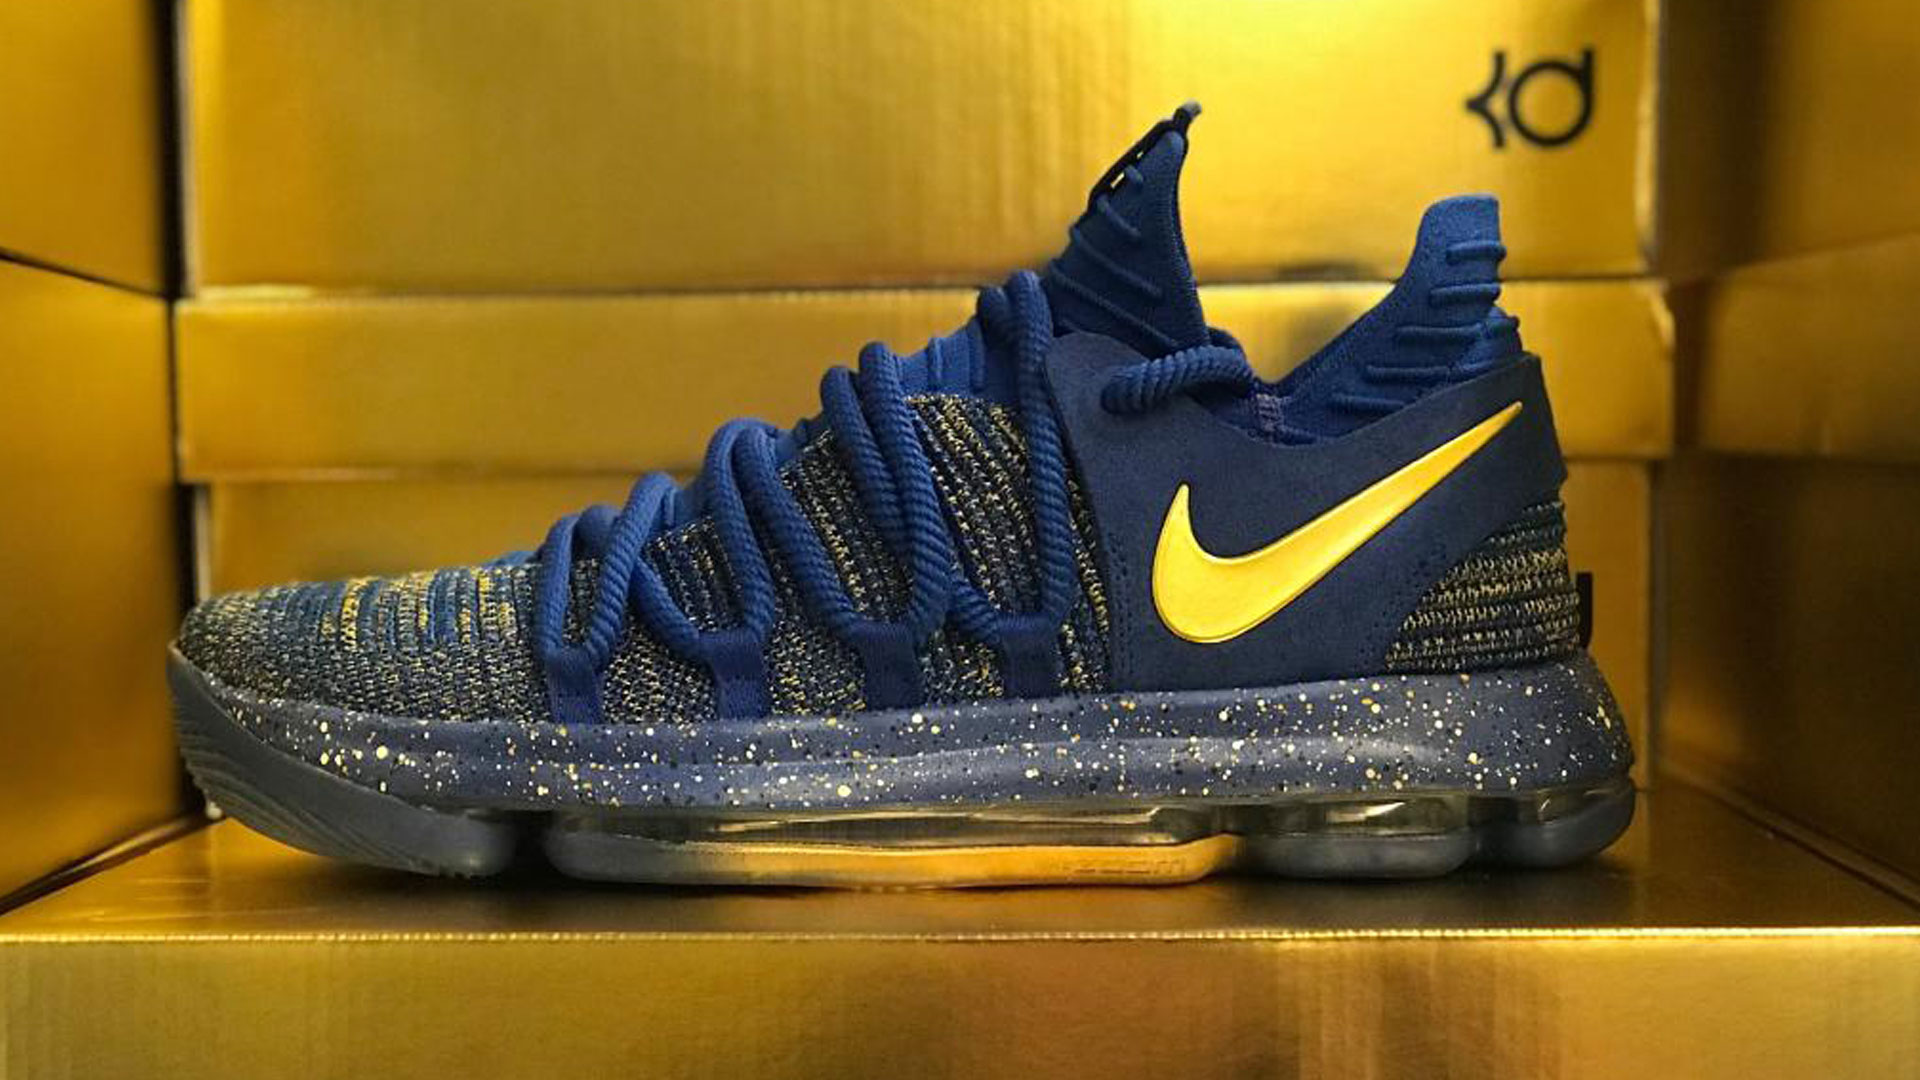 awesome kd shoes Kevin Durant shoes on sale